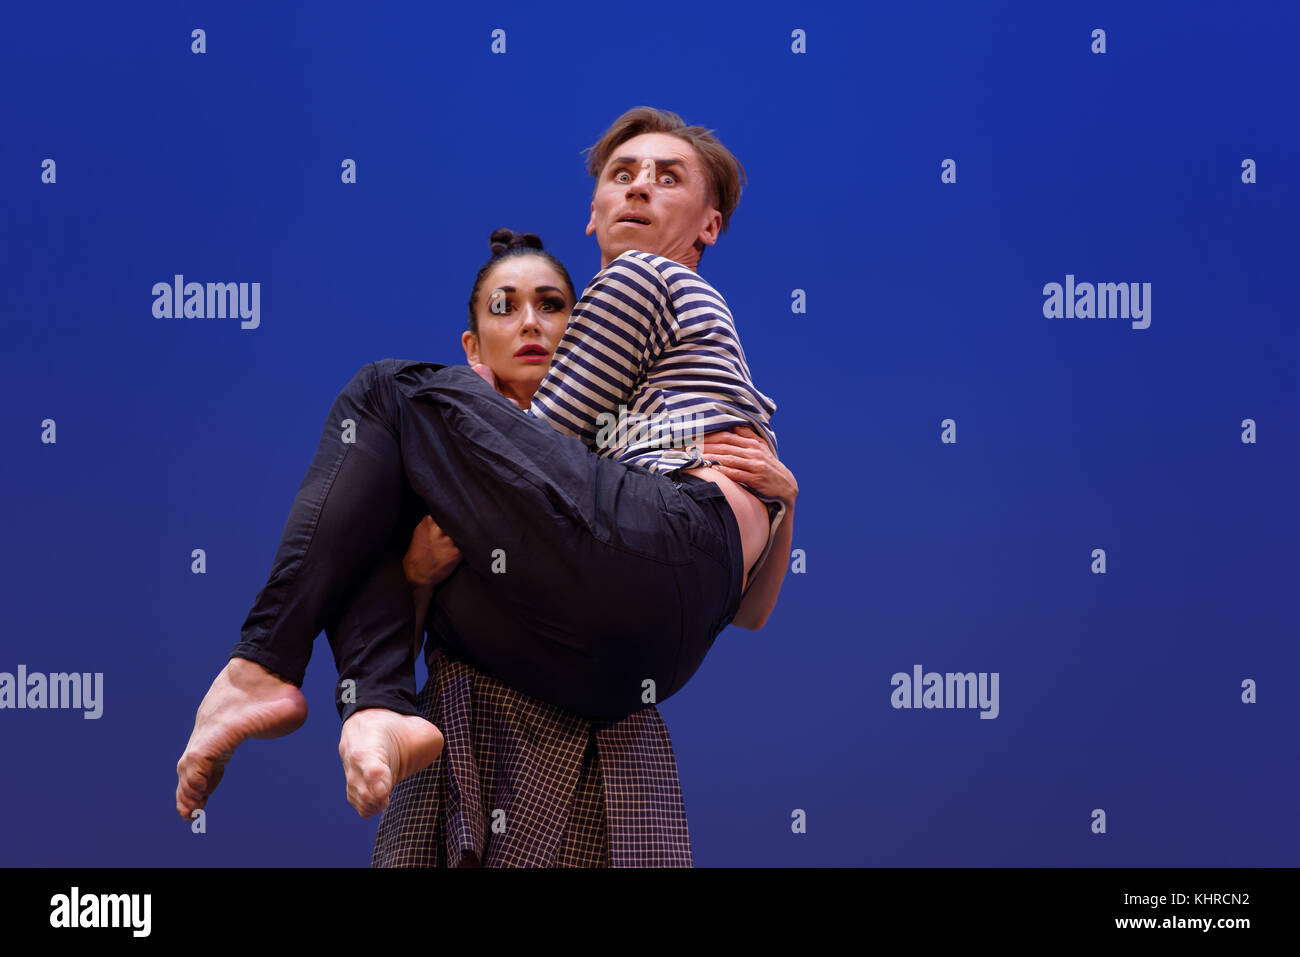 St. Petersburg, Russia - November 16, 2017: Ballet soloists of Mariinsky theater Alisa Petrenko and Igor Kolb perform - Stock Image